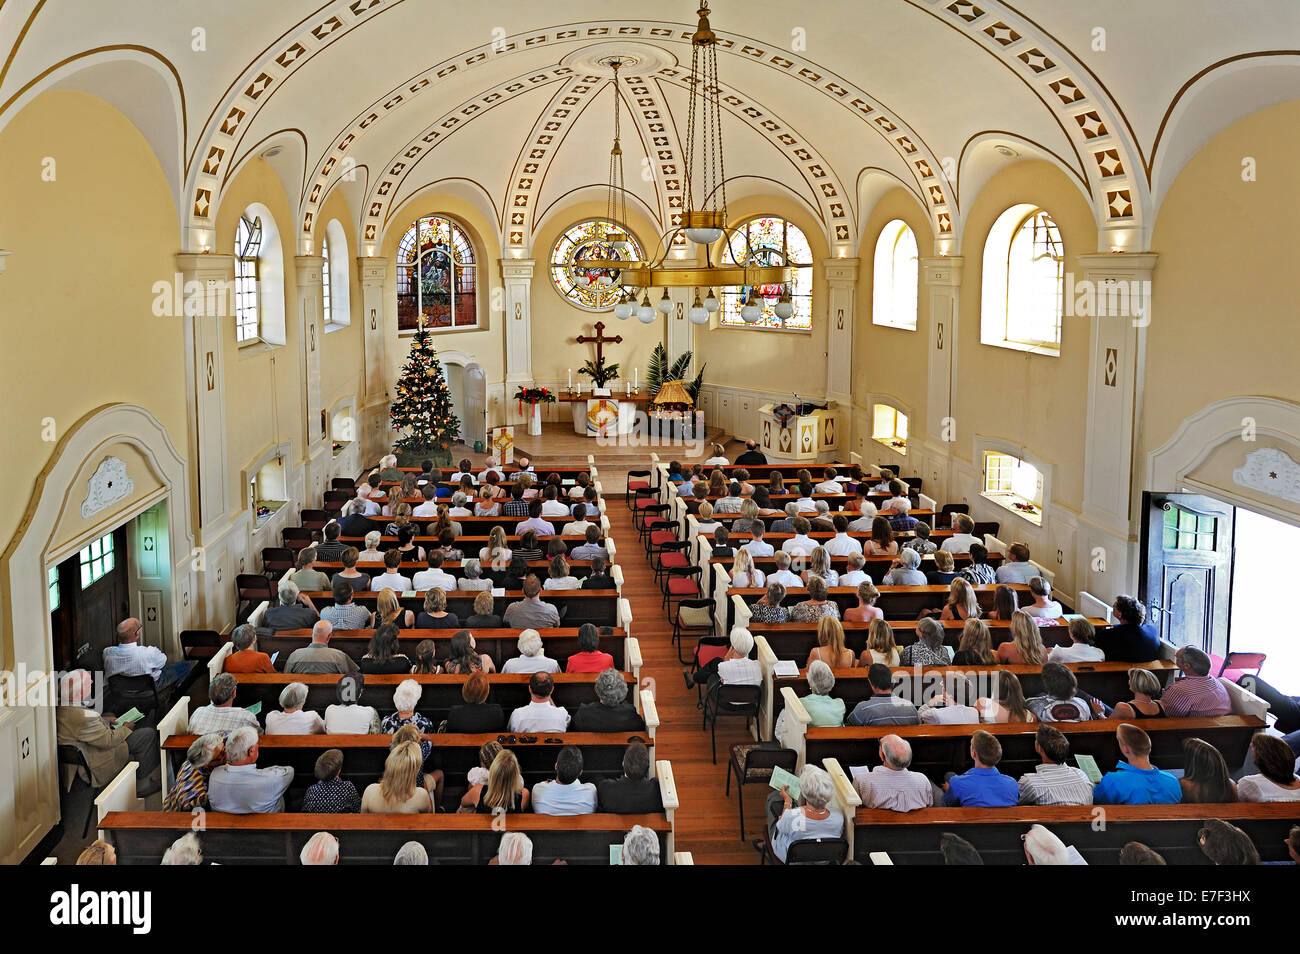 Christmas Mass, Evangelical Lutheran Church, Swakopmund, Namibia - Stock Image